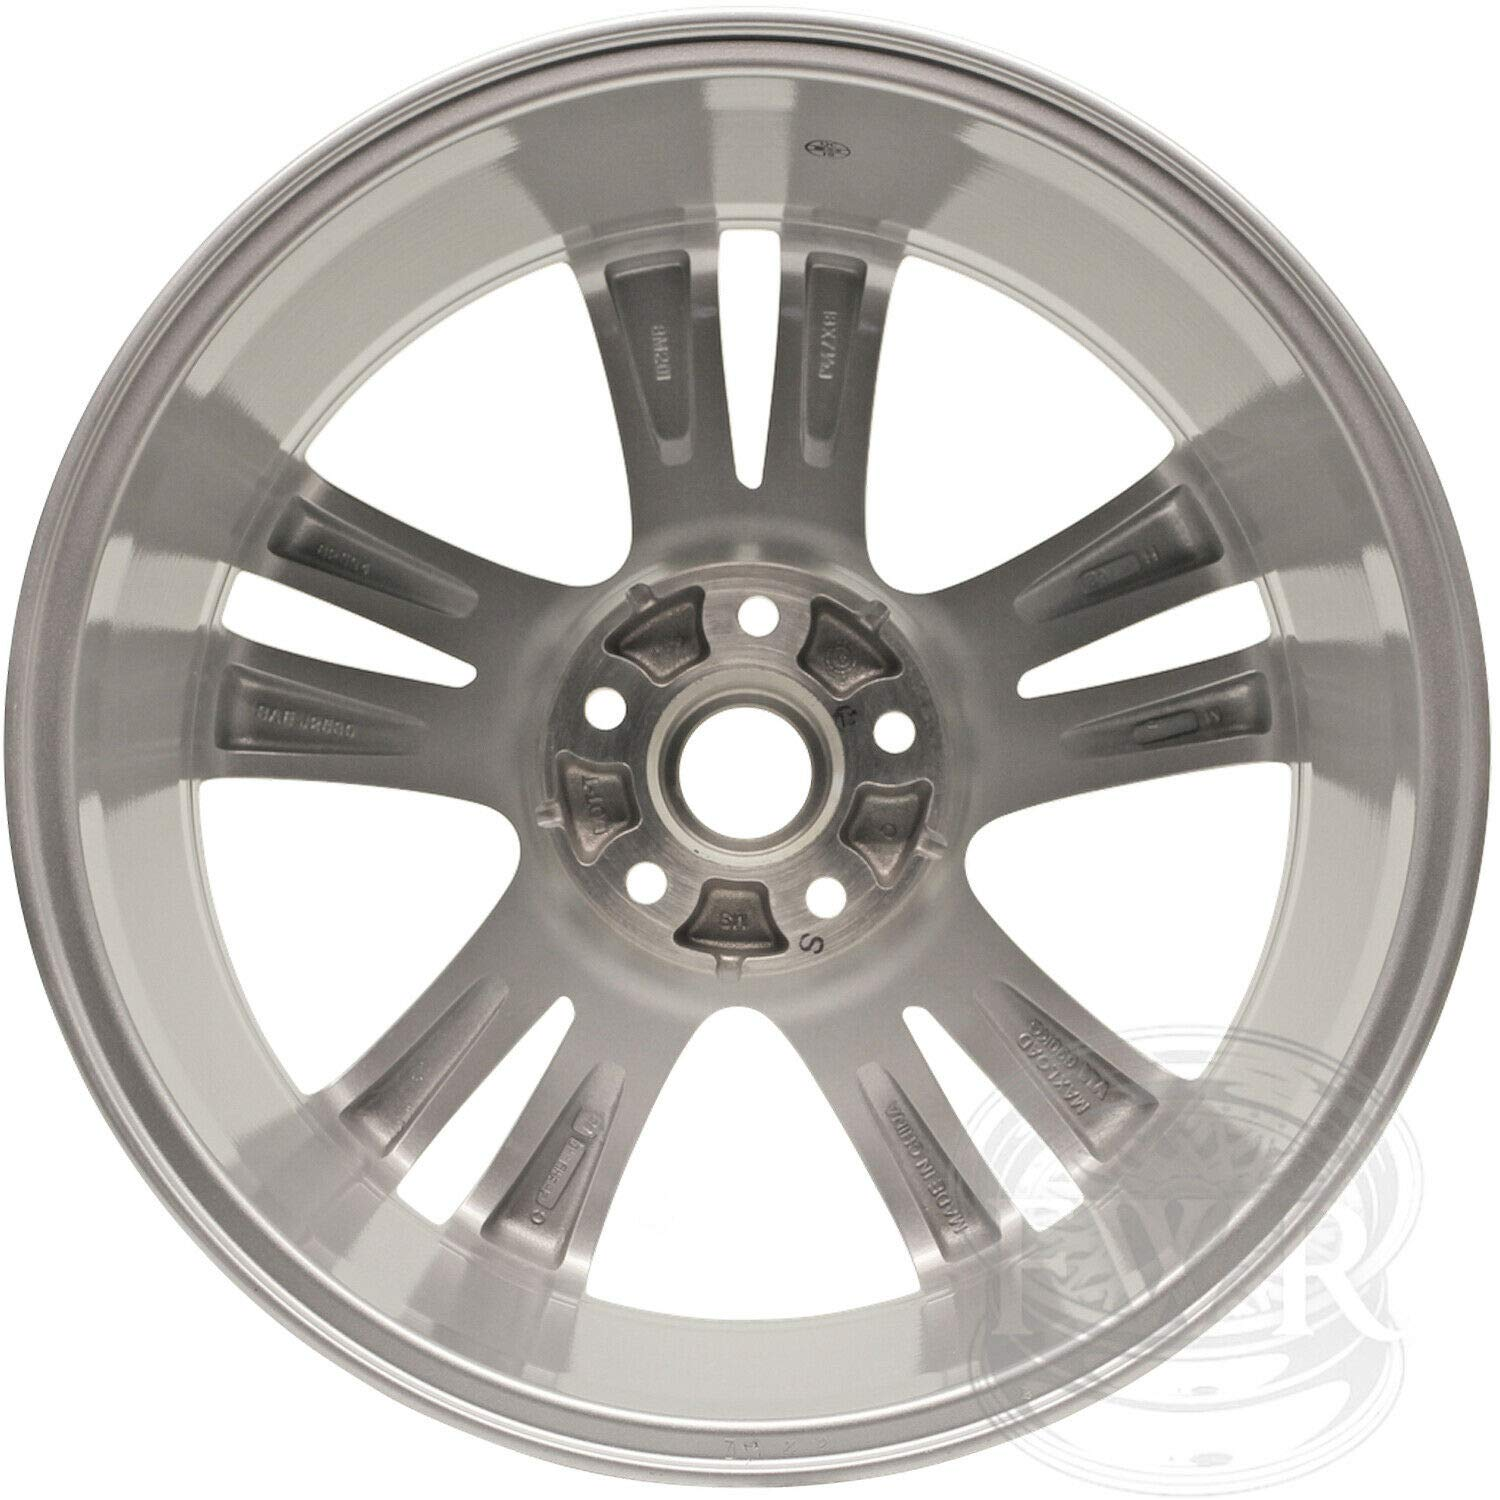 New 18 inch Replacement Alloy Wheel Rim compatible with Nissan Altima 2013-2018